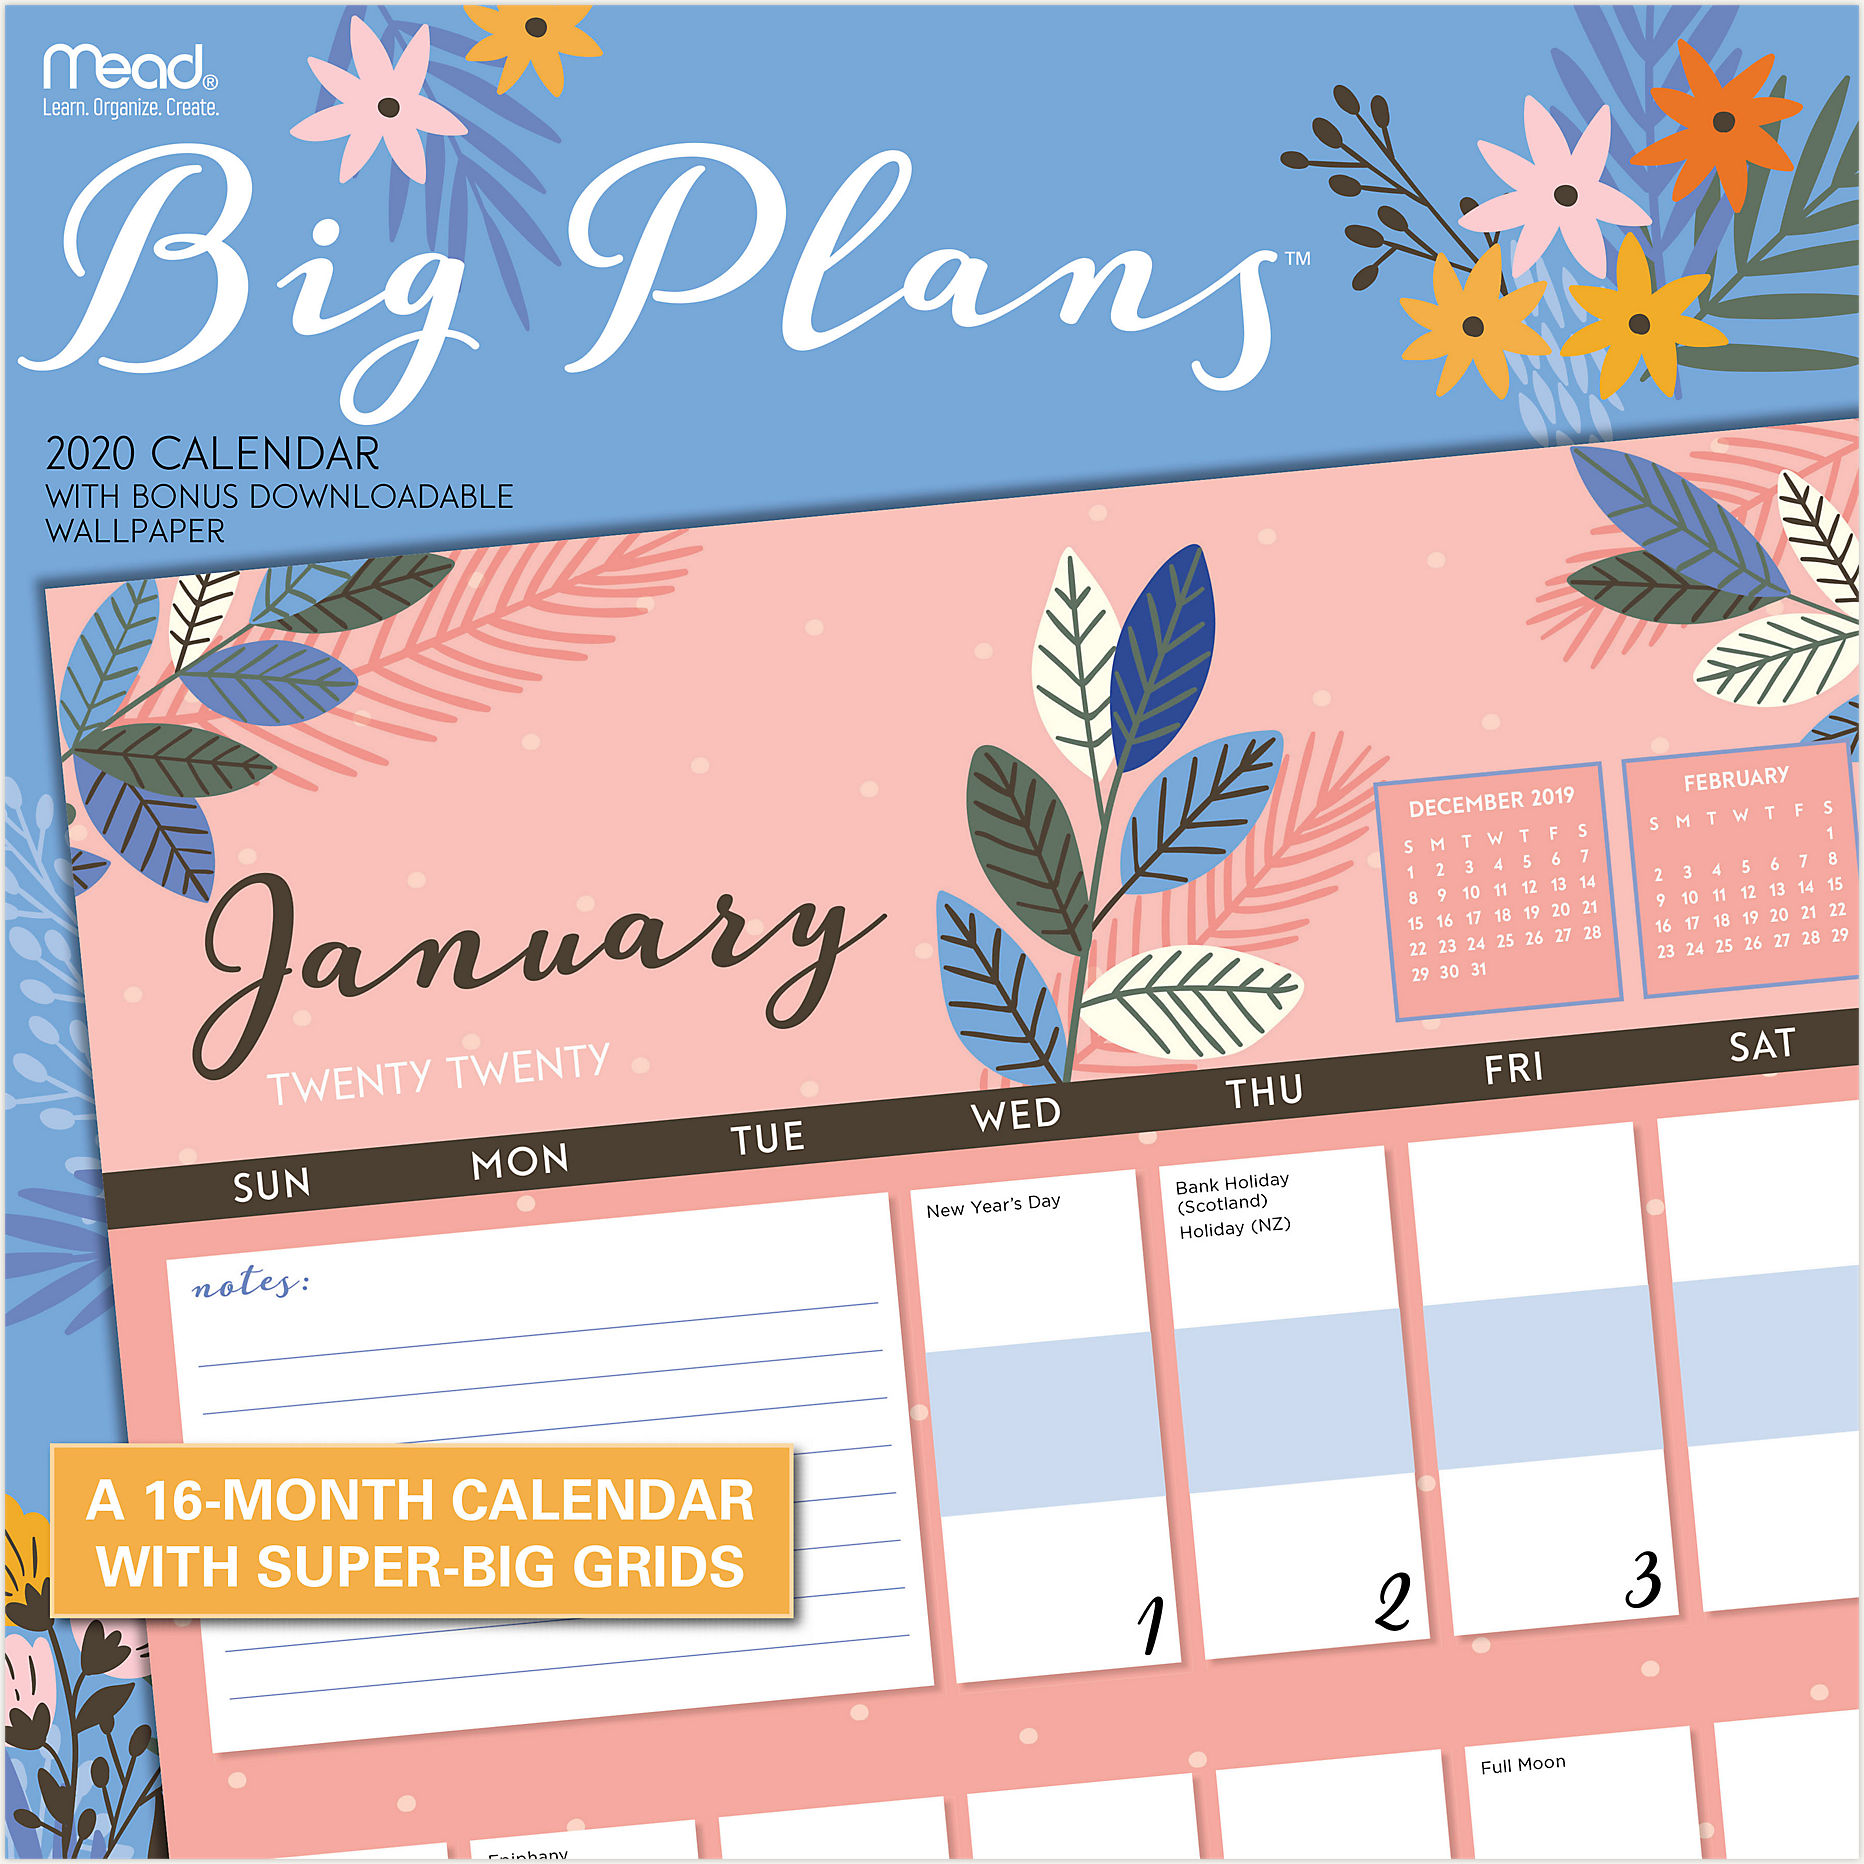 Calendar Of Events Reading Pa December 16, 2020 Big Plans 12x12 Monthly Wall Calendar | LME206 | Mead